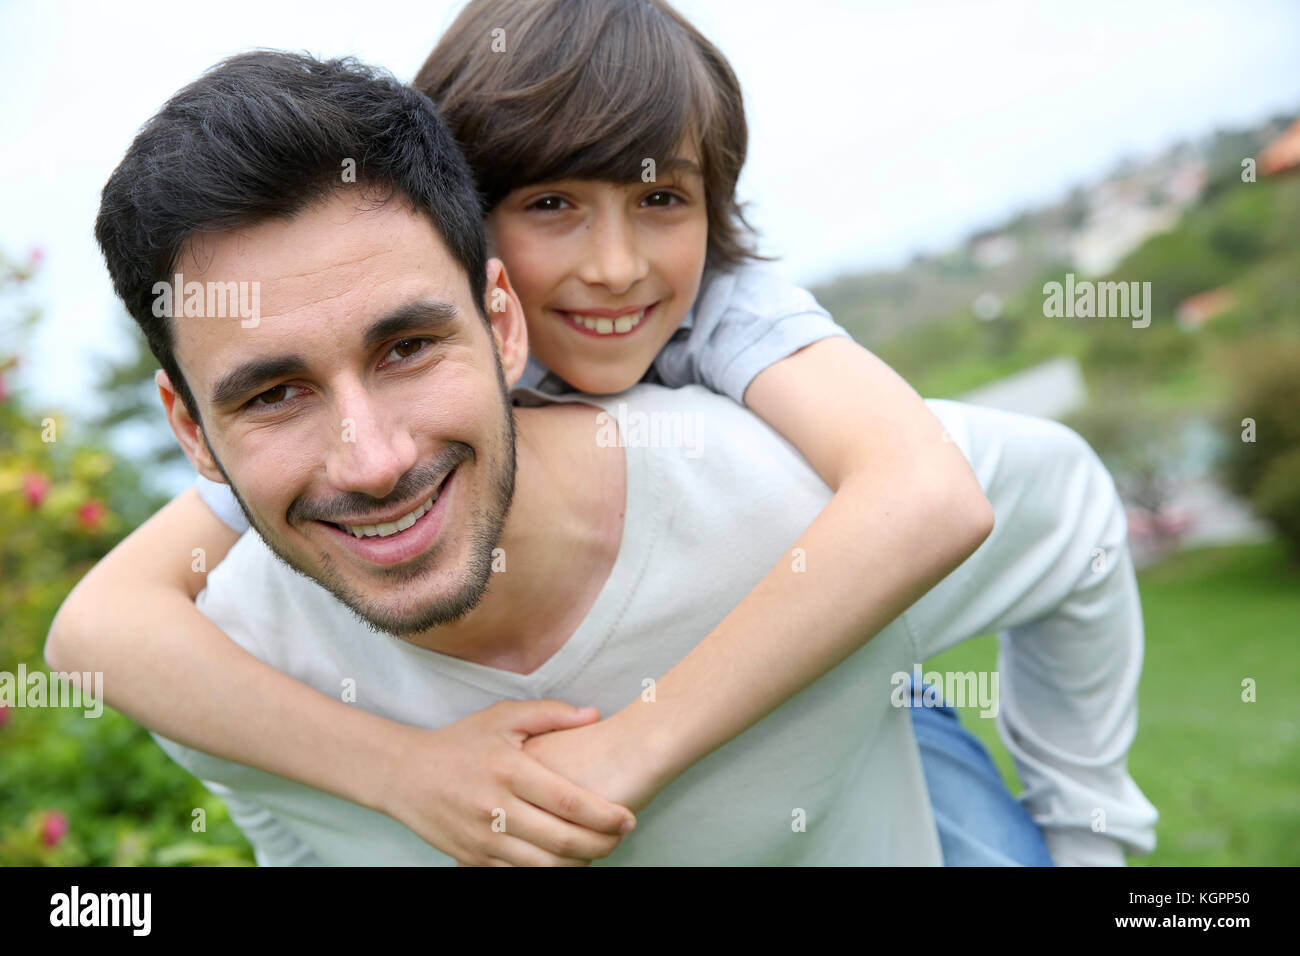 Father giving piggyback ride to his son - Stock Image